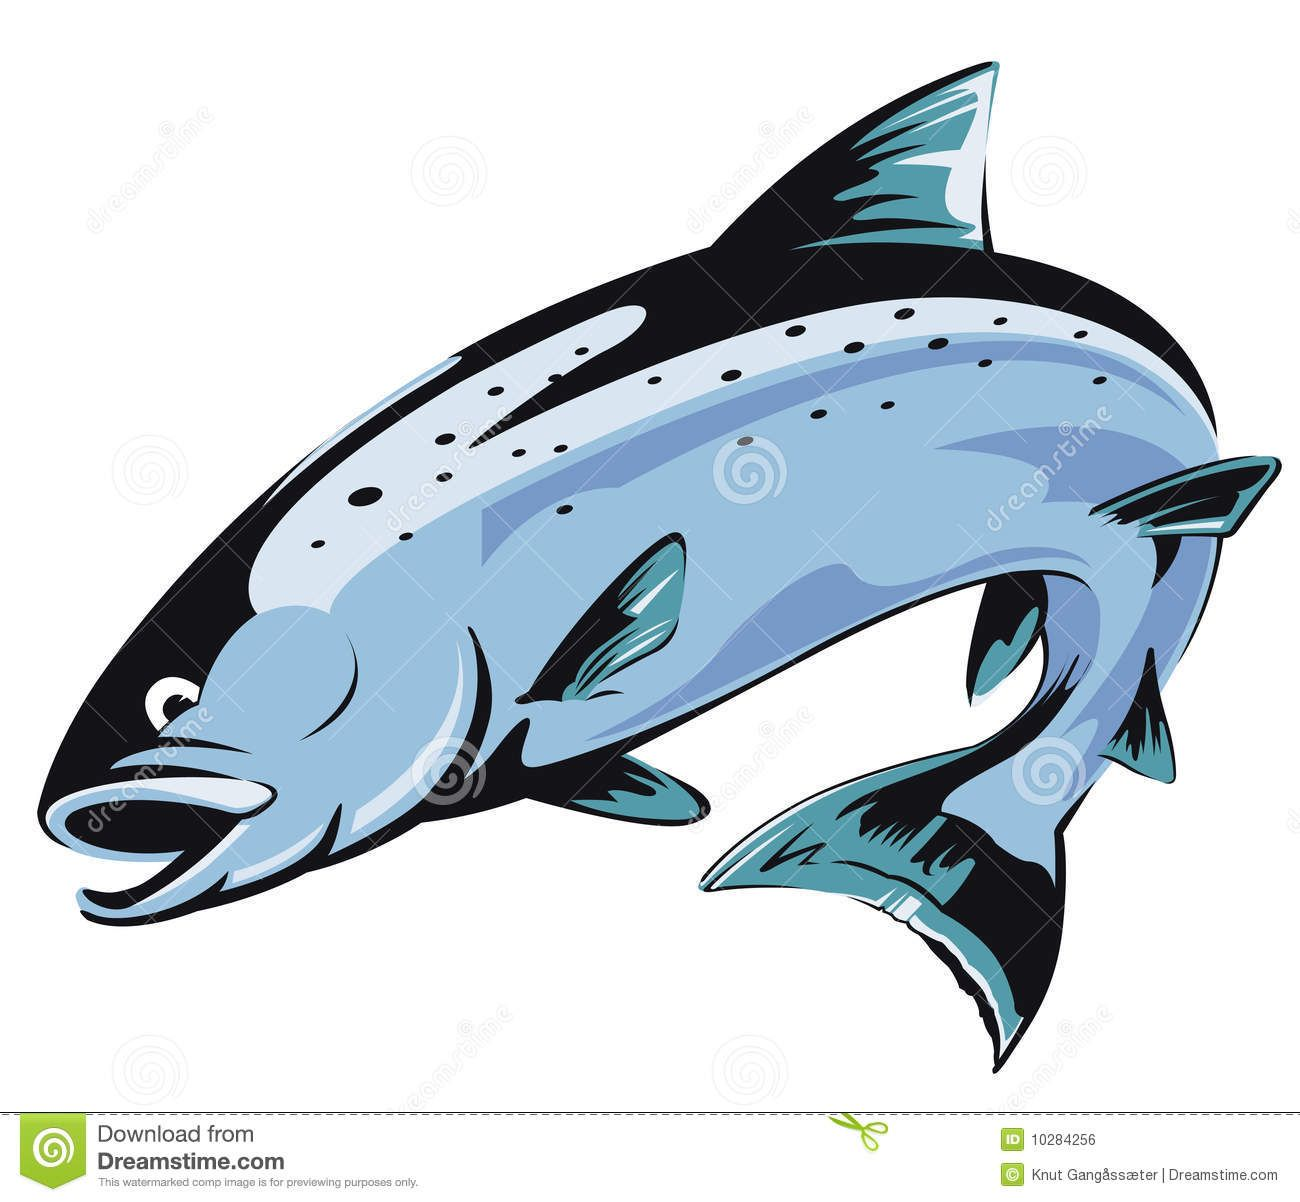 Salmom clipart svg freeuse download Salmon cliparts   Native salmon in 2019   Fish drawings ... svg freeuse download